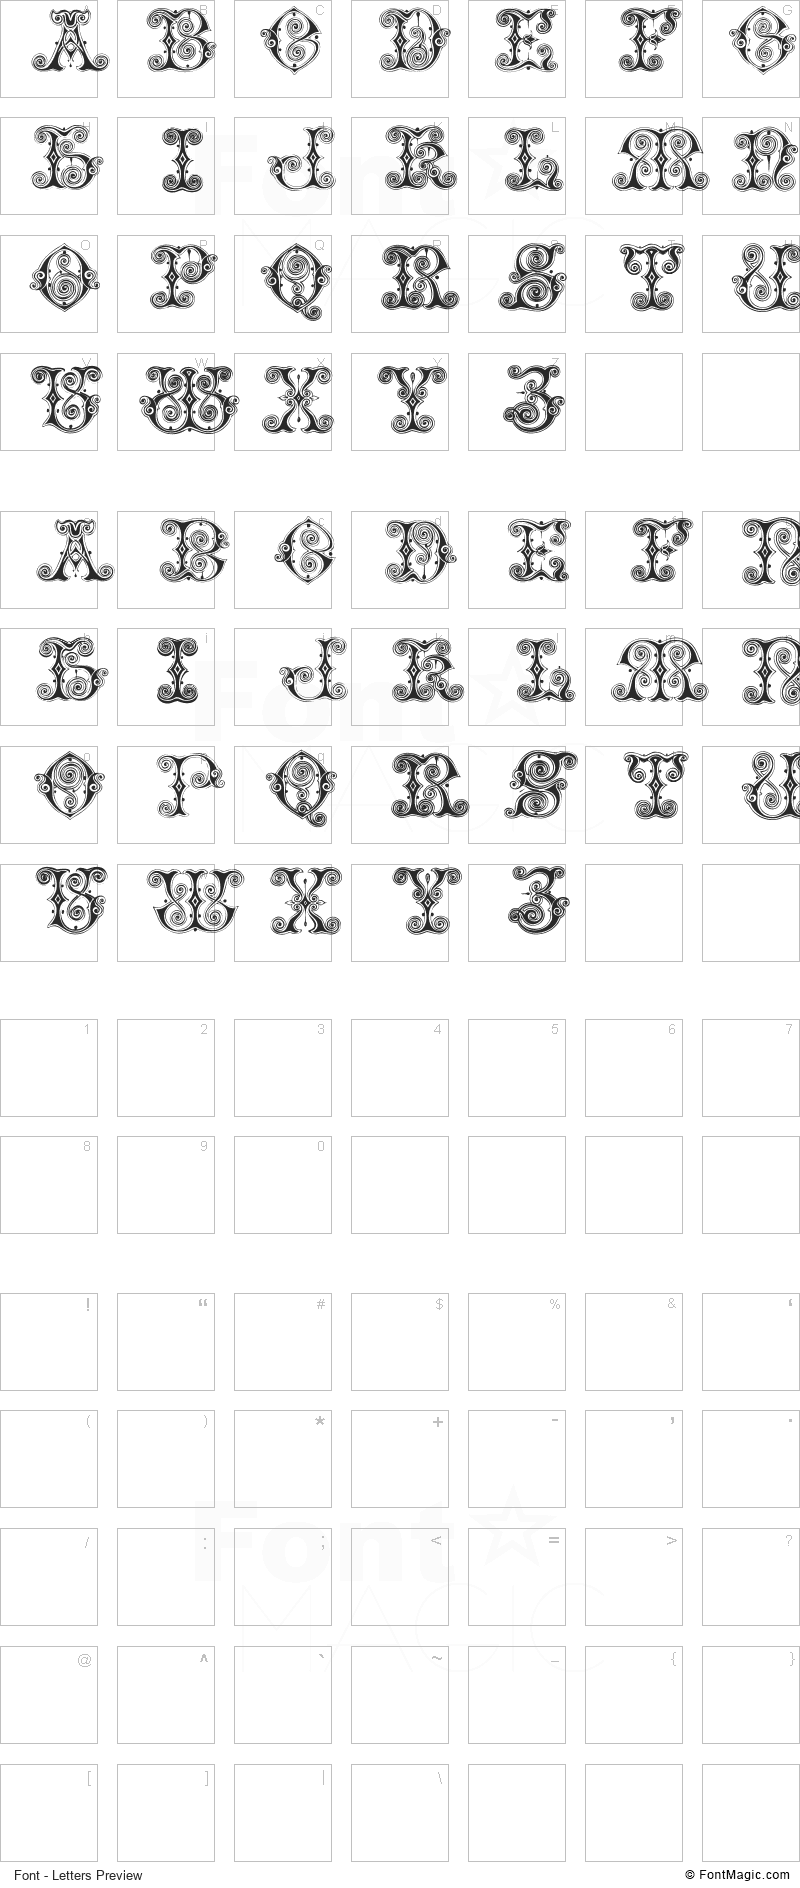 Vaticanian Initials Font - All Latters Preview Chart